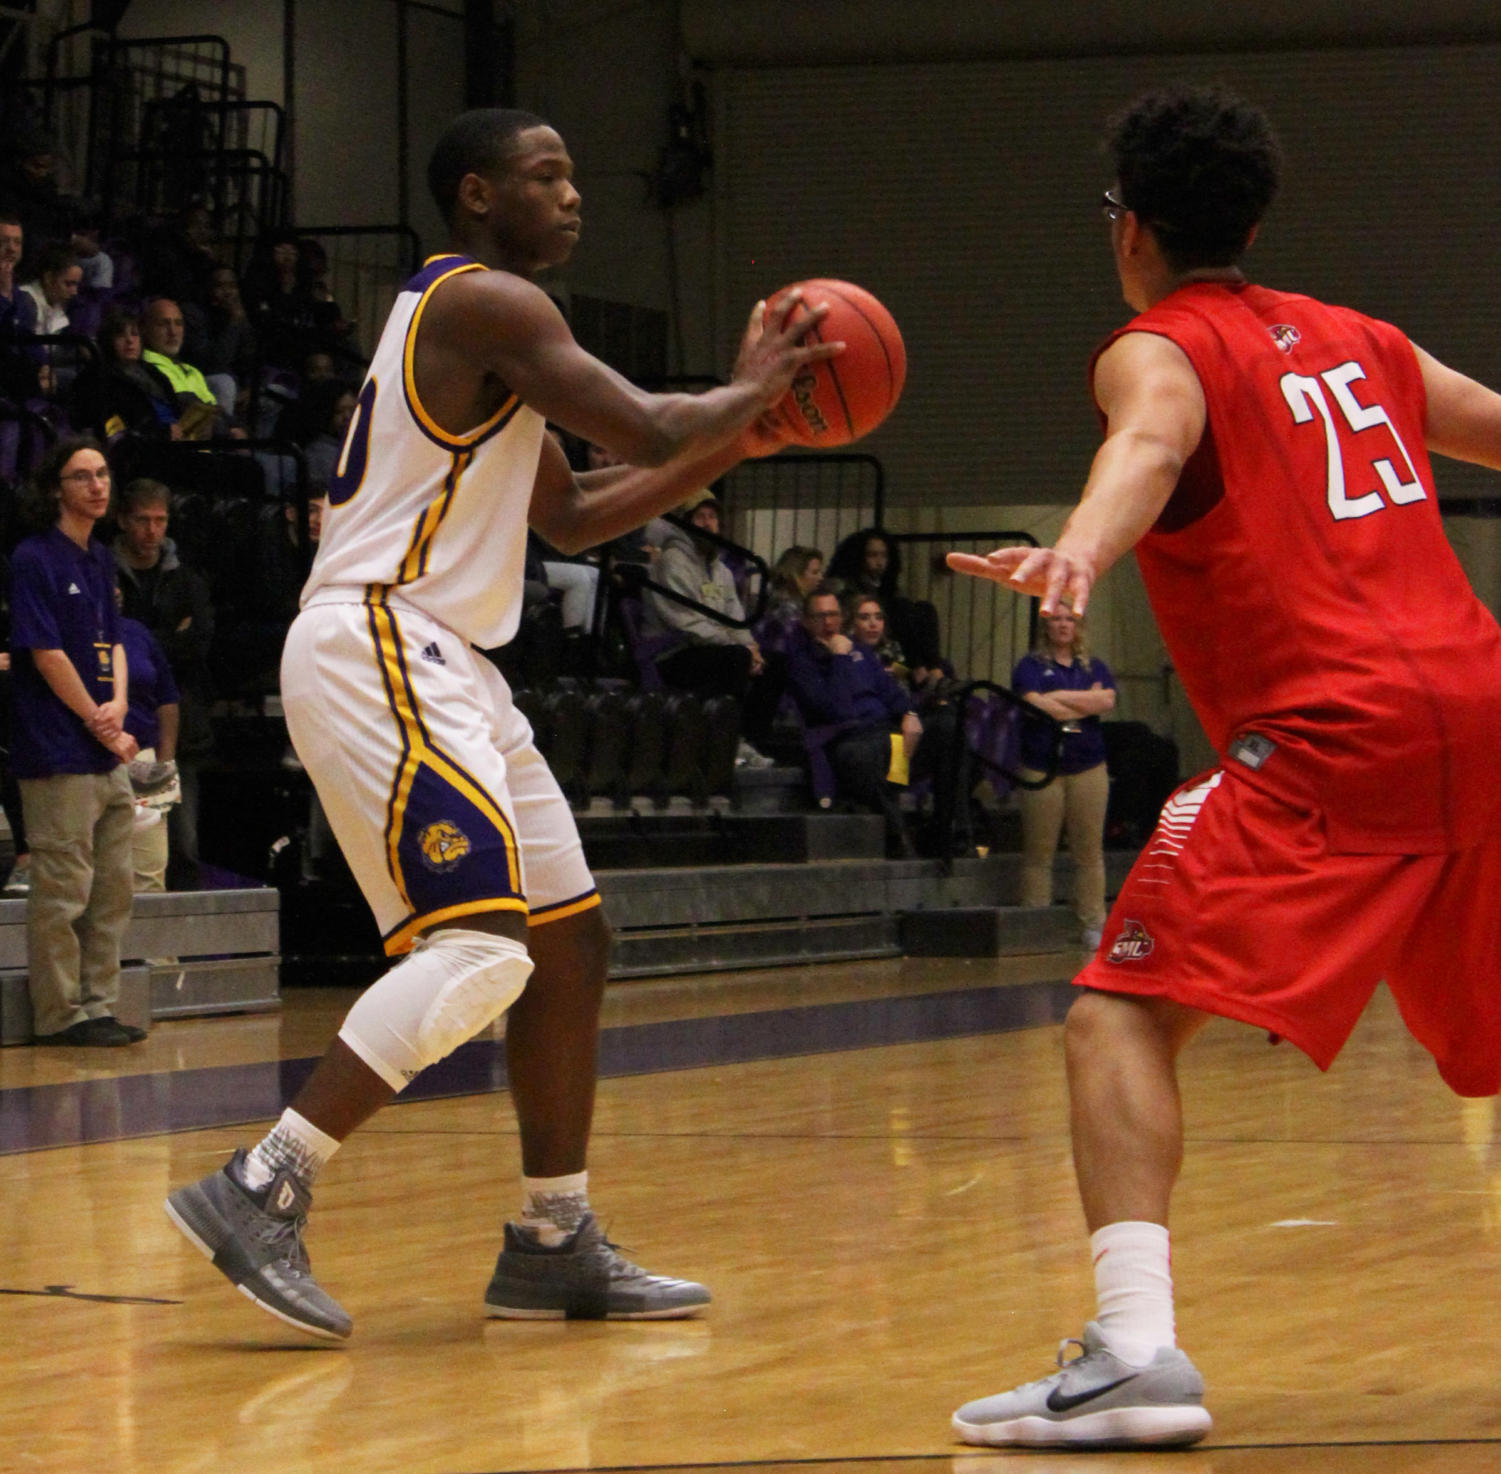 C.J. Duff ball fakes to set up a drive to the hoop for two of his eight points on the night.